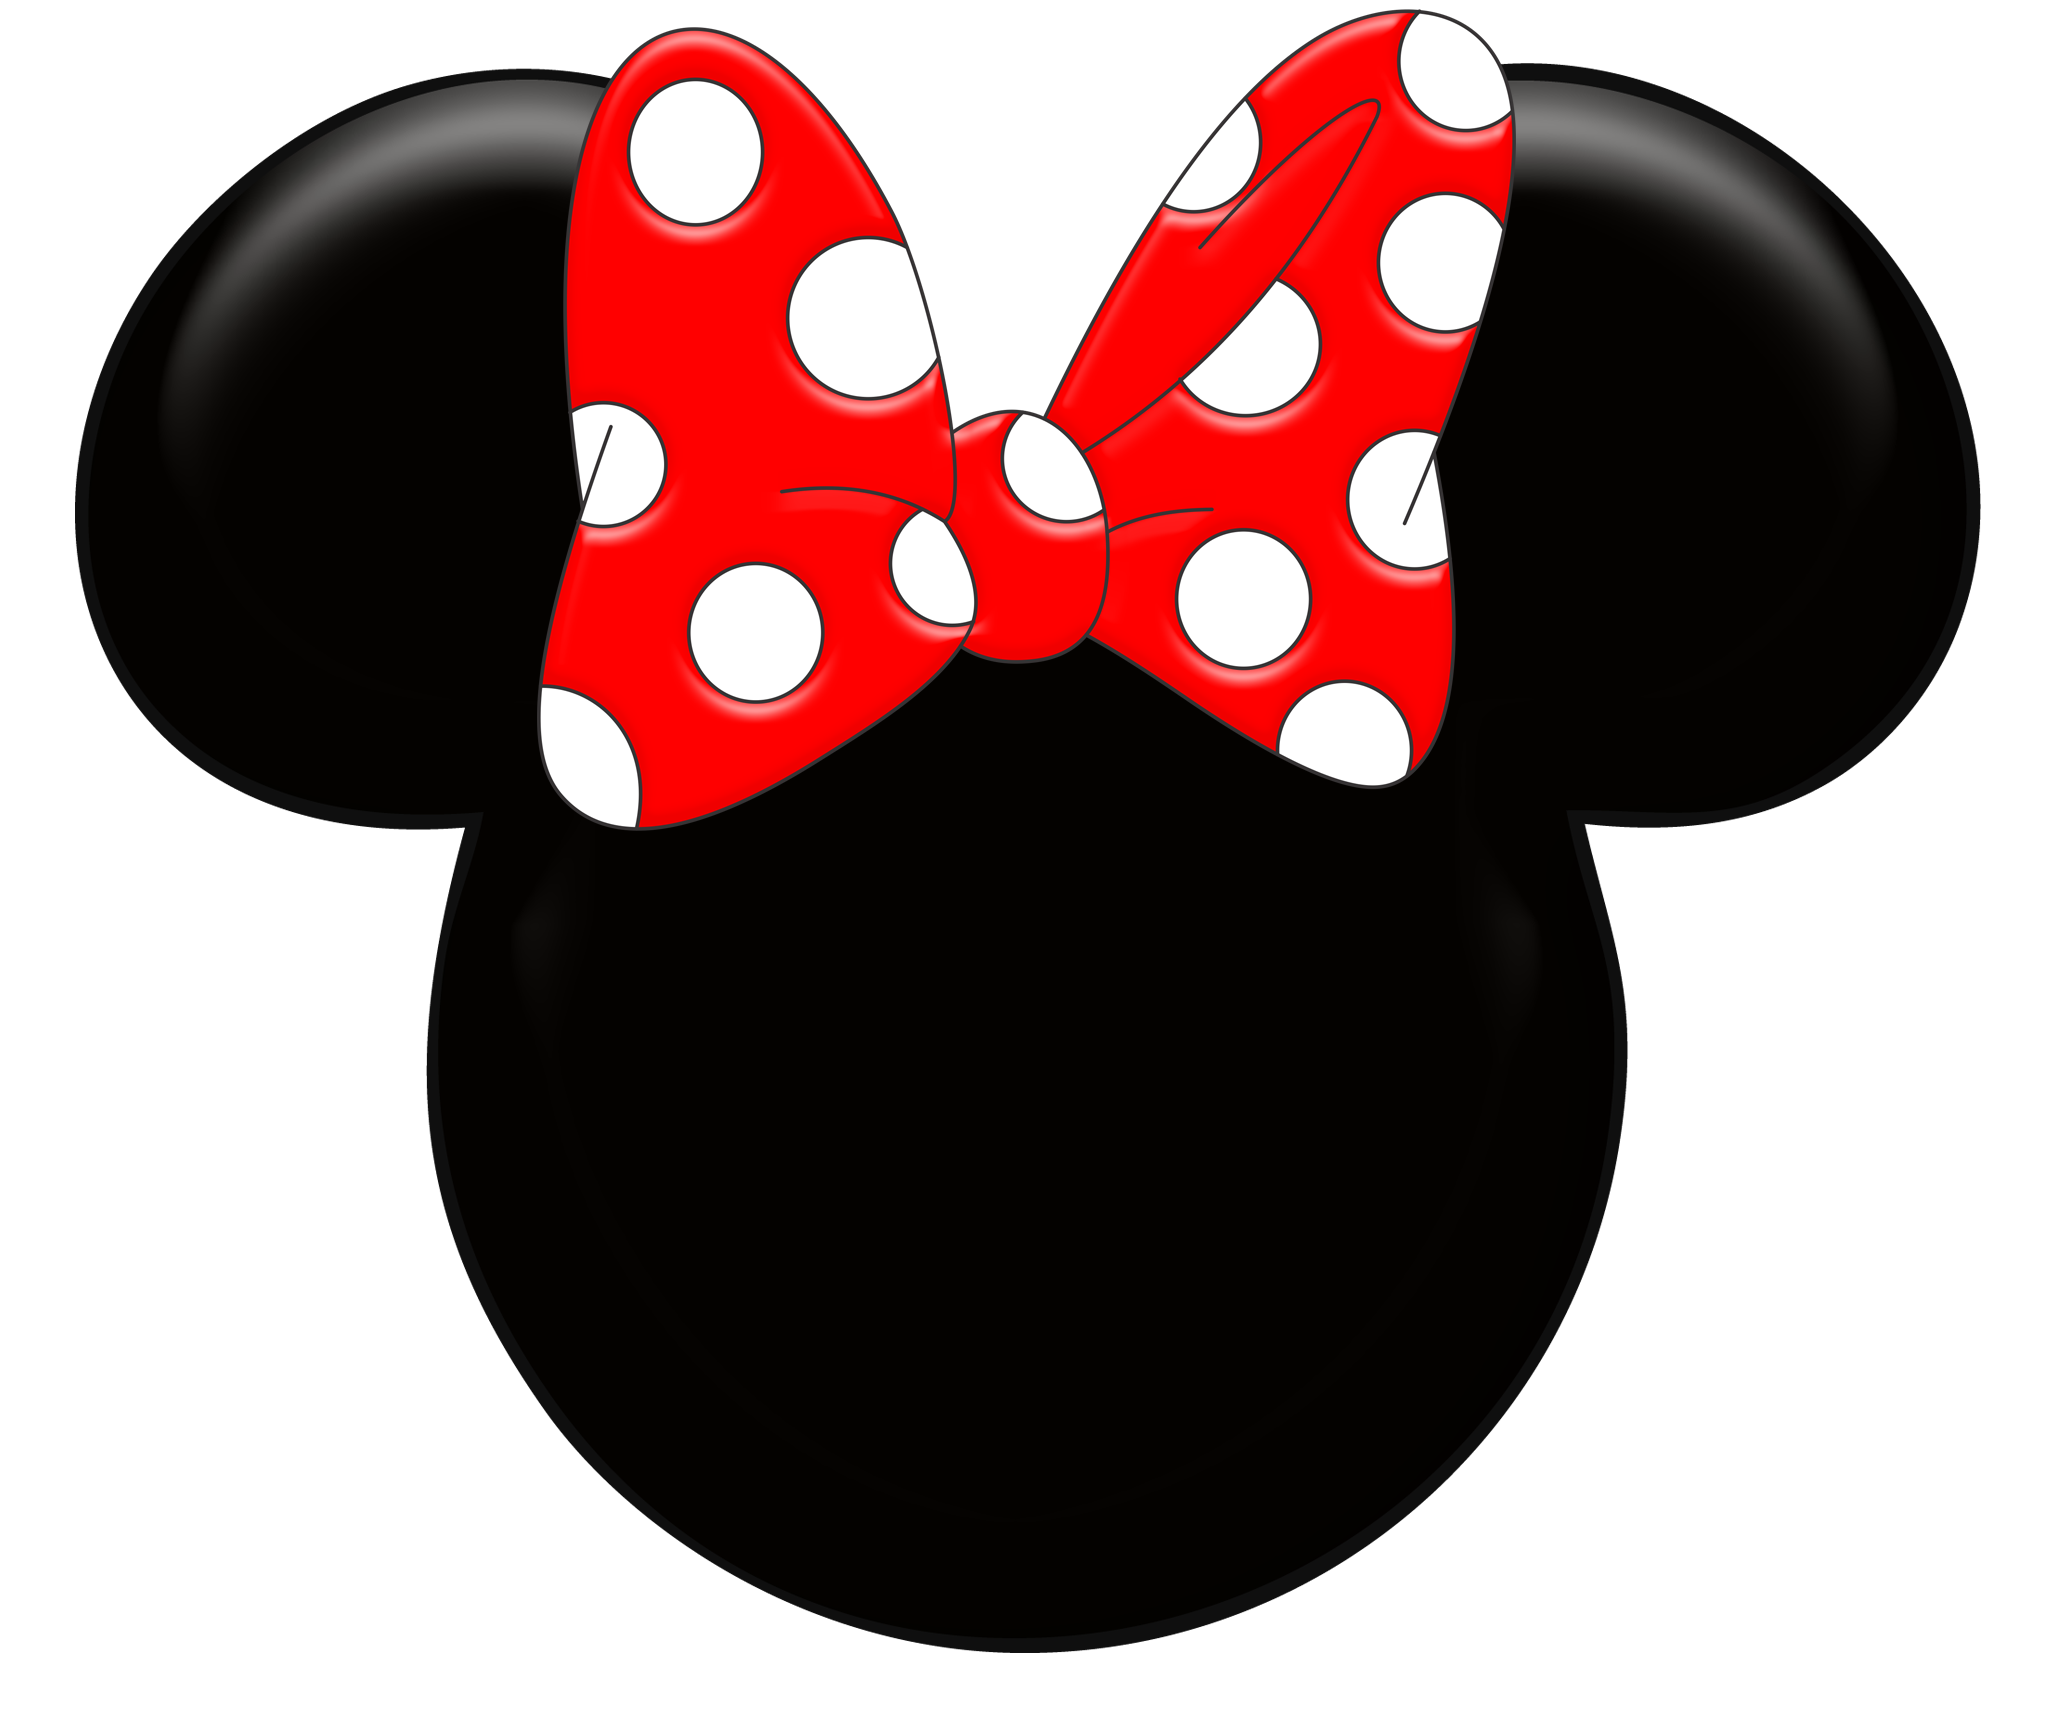 red-minnie-mouse-wallpaper-Kit Digital minnie Mouse pngRed Minnie Mouse Head Clip Art